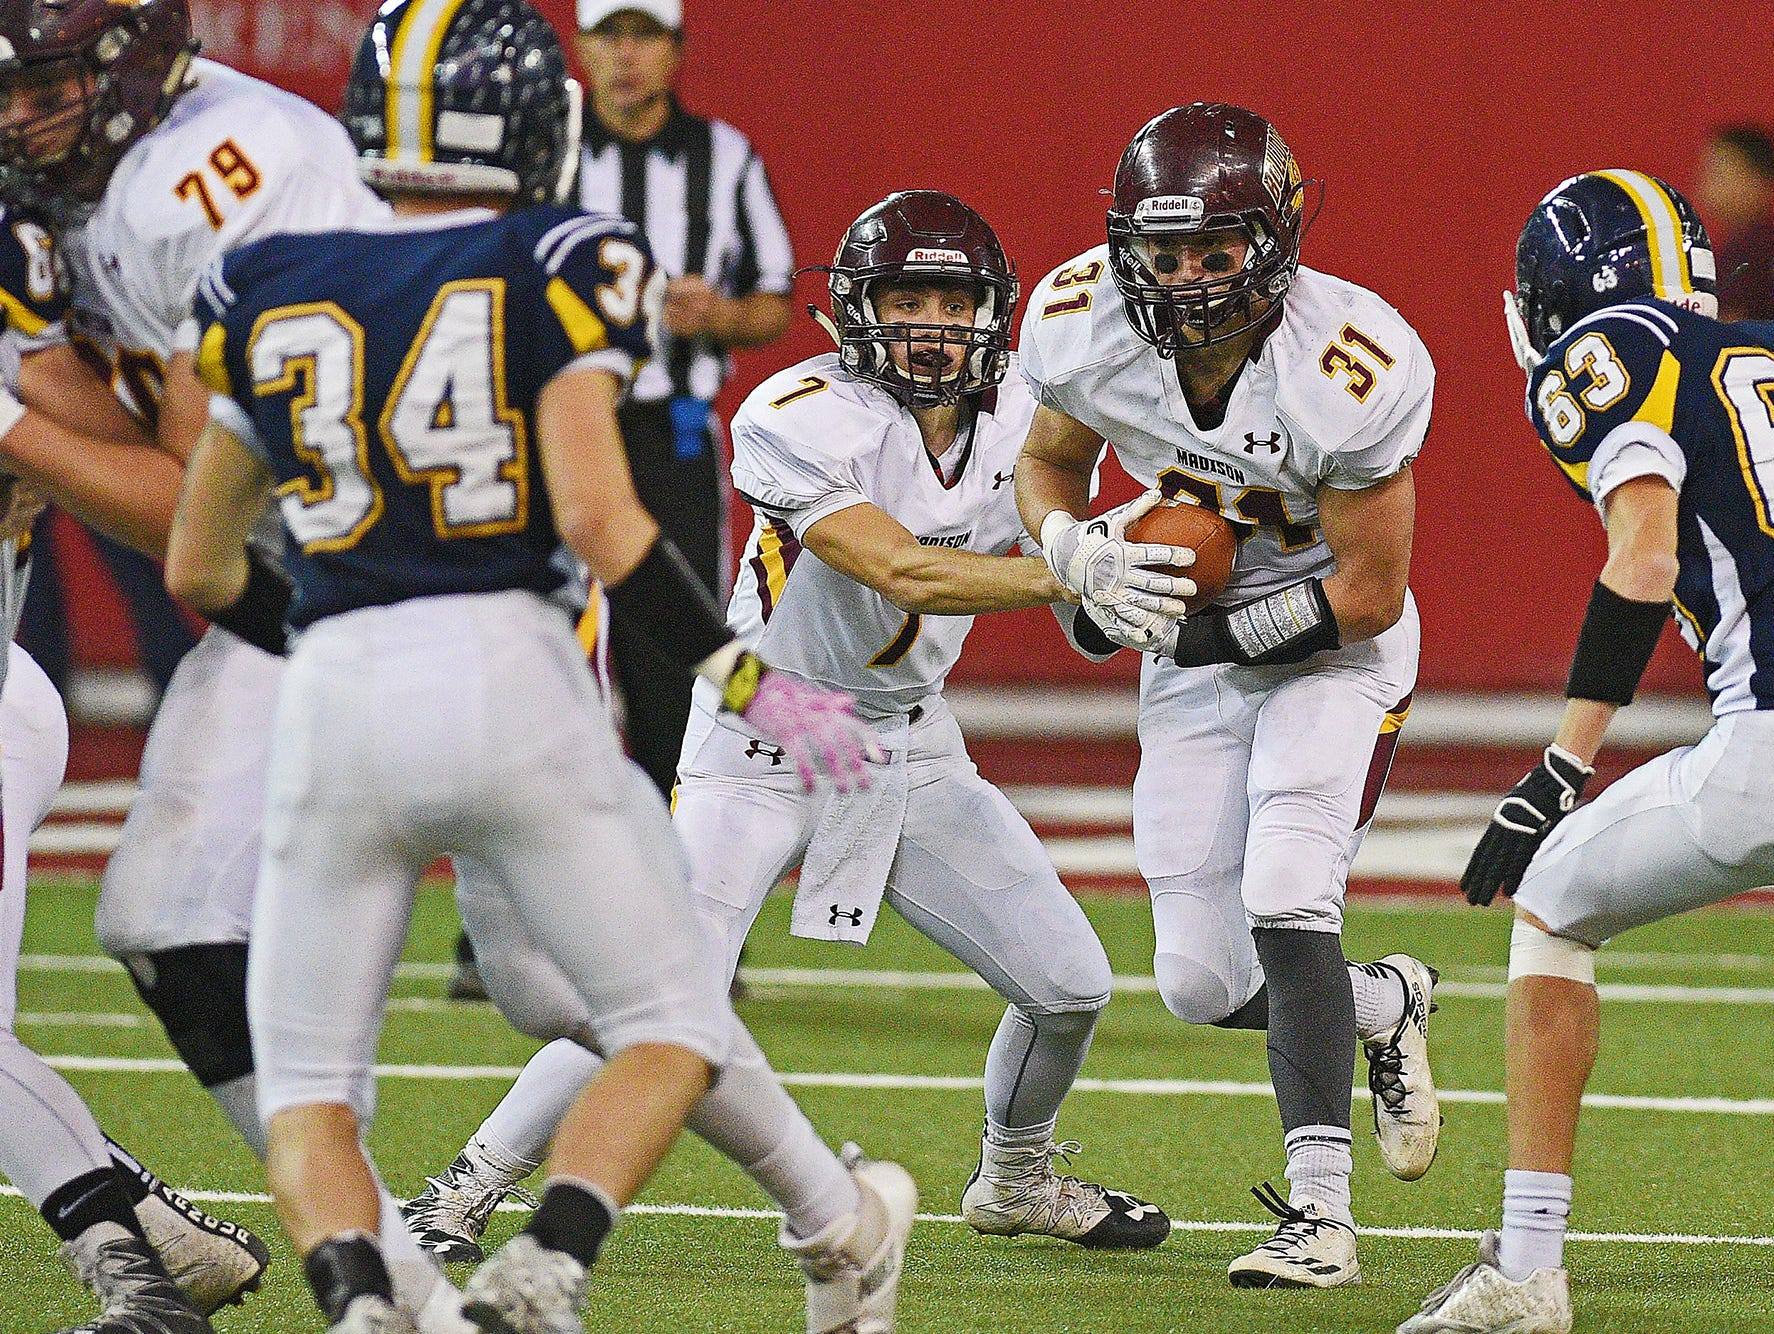 Madison's Riley Janke (31) carries the ball during the 2016 South Dakota State Class 11A Football Championship game against Tea Area Saturday, Nov. 12, 2016, at the DakotaDome on the University of South Dakota campus in Vermillion, S.D. Madison beat Tea Area 39-0.